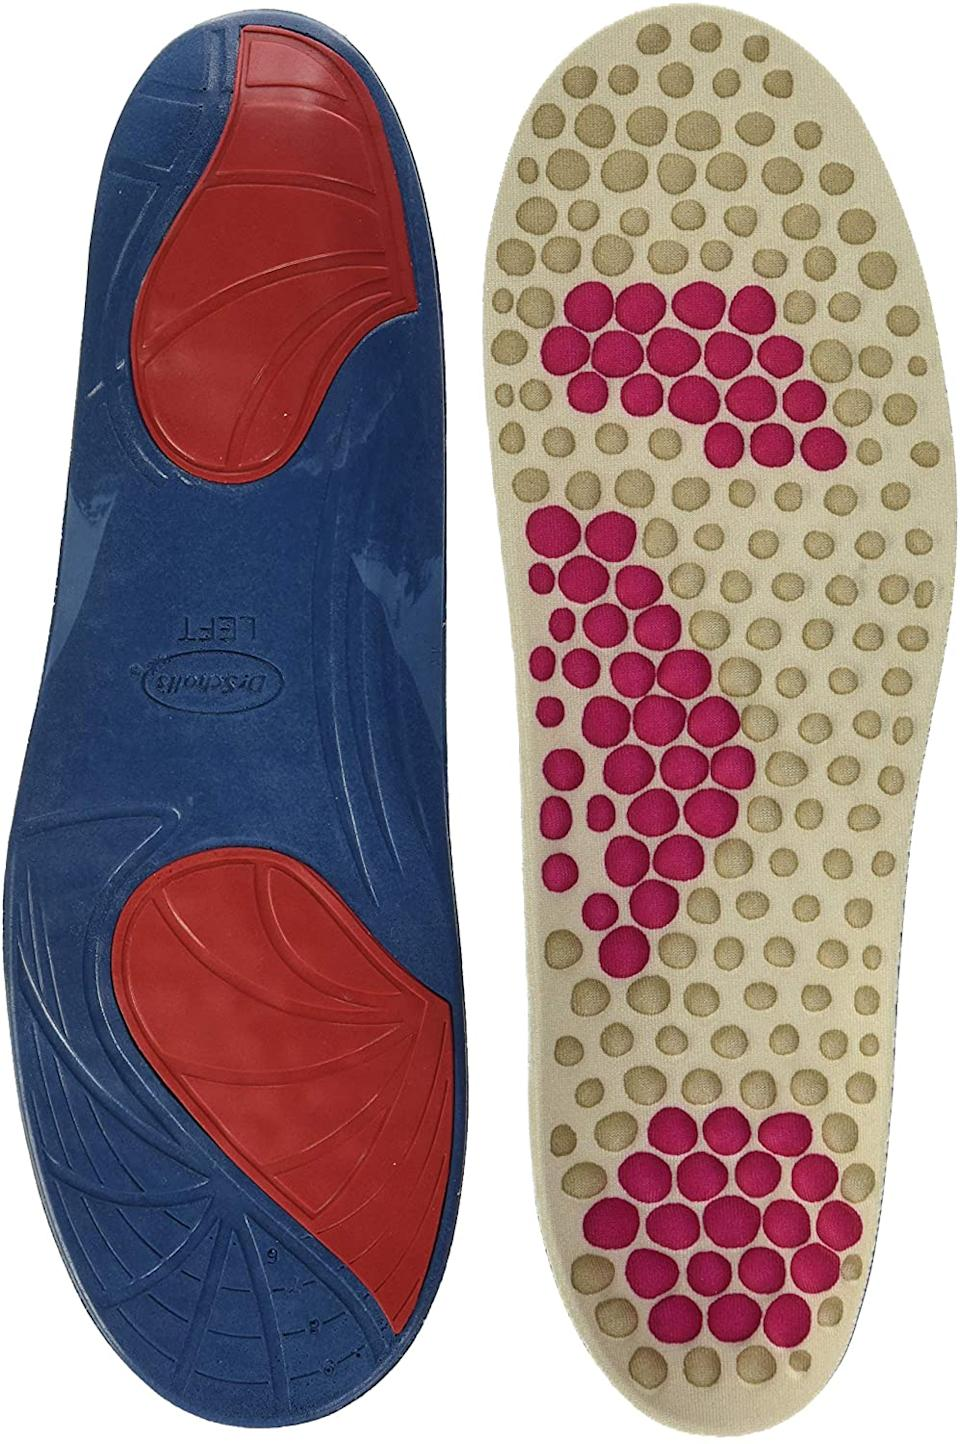 Massaging pads help relieve foot pain with ever step. Image via Amazon.